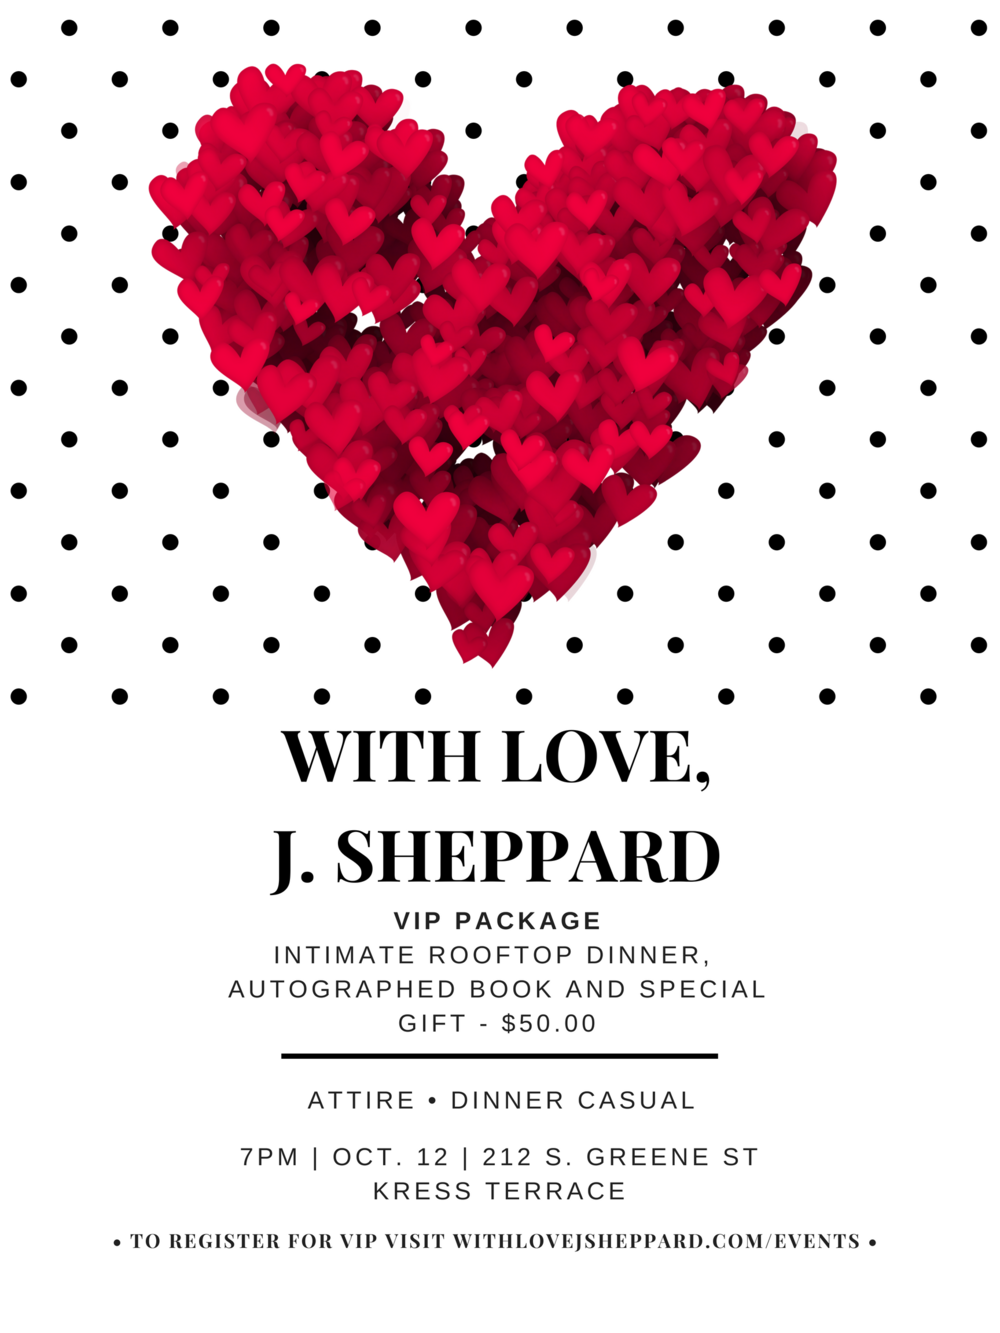 With Love, J. Sheppard VIP Package - Join me for an intimate rooftop dinner at Kress Terrace. There will be two entrees for guest to choose from. Along with a wonderful evening of great conversation over exquisite food (provided by special catering), guest will also recieve an autographed book and two special gifts. To purchase this option, please click on the image.DINNER WILL BEGIN PROMPTLY AT 7:00 PM AND WILL END AT 8:00 PM. DOORS WILL OPEN FOR THESE GUEST TO CHECK IN AND BE SEATED BEGINNING AT 6:45 PM.